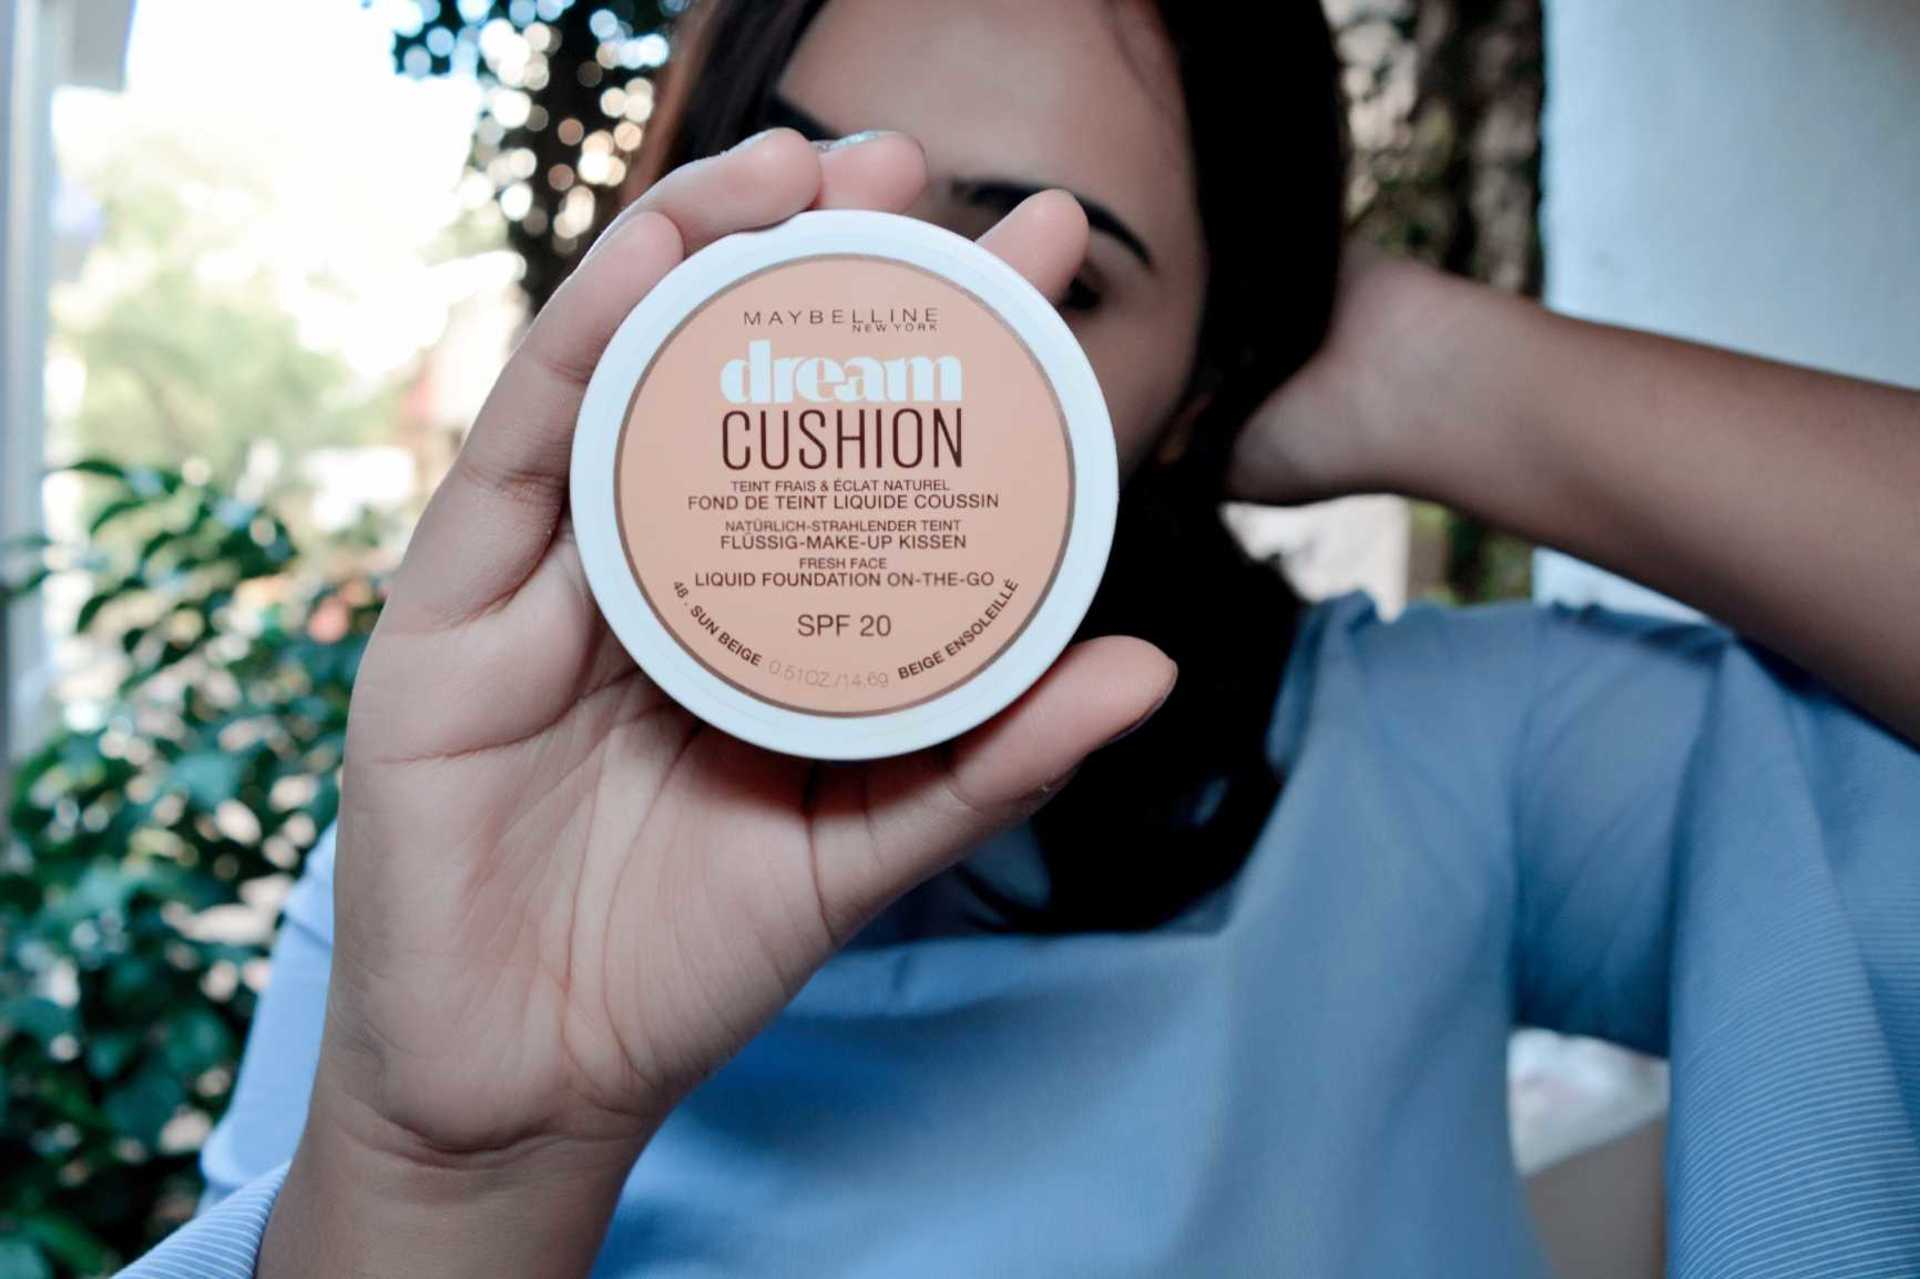 Maybelline Dream Cushion Review + Comparision with Maybelline BB Cushion image